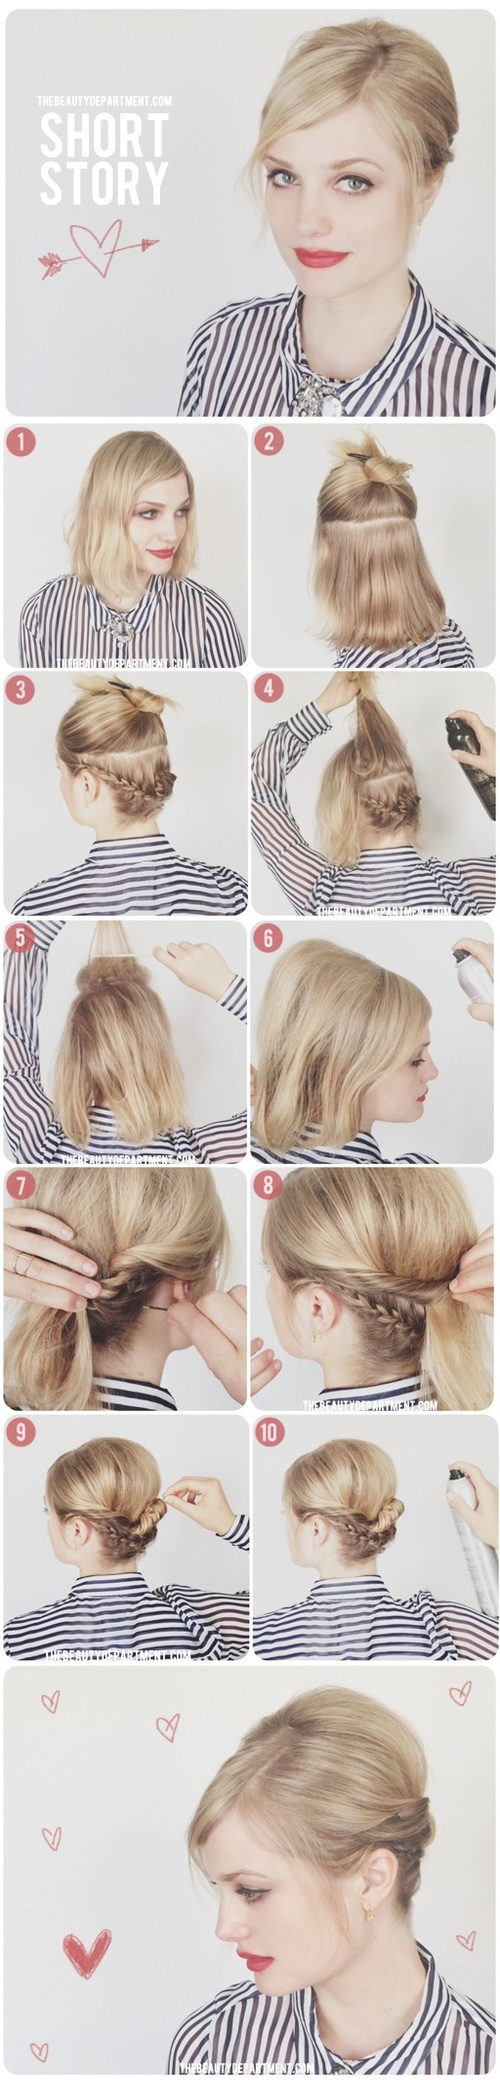 15 Sassy Hairstyle Tutorials for Short or Medium Hair Pretty Designs